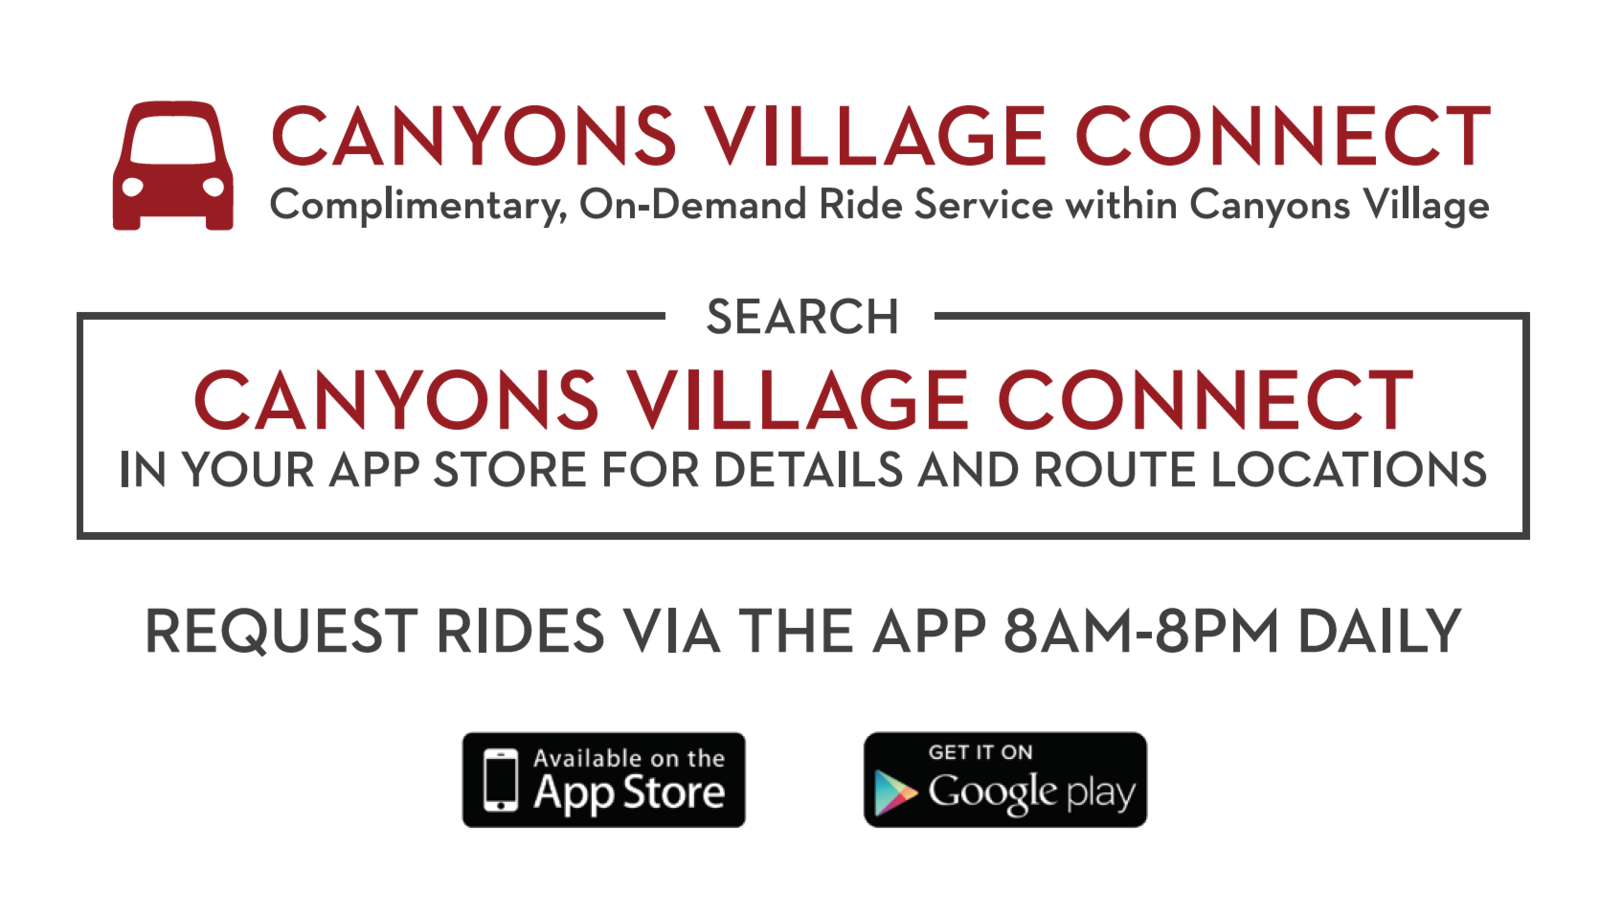 Canyons Village Connect